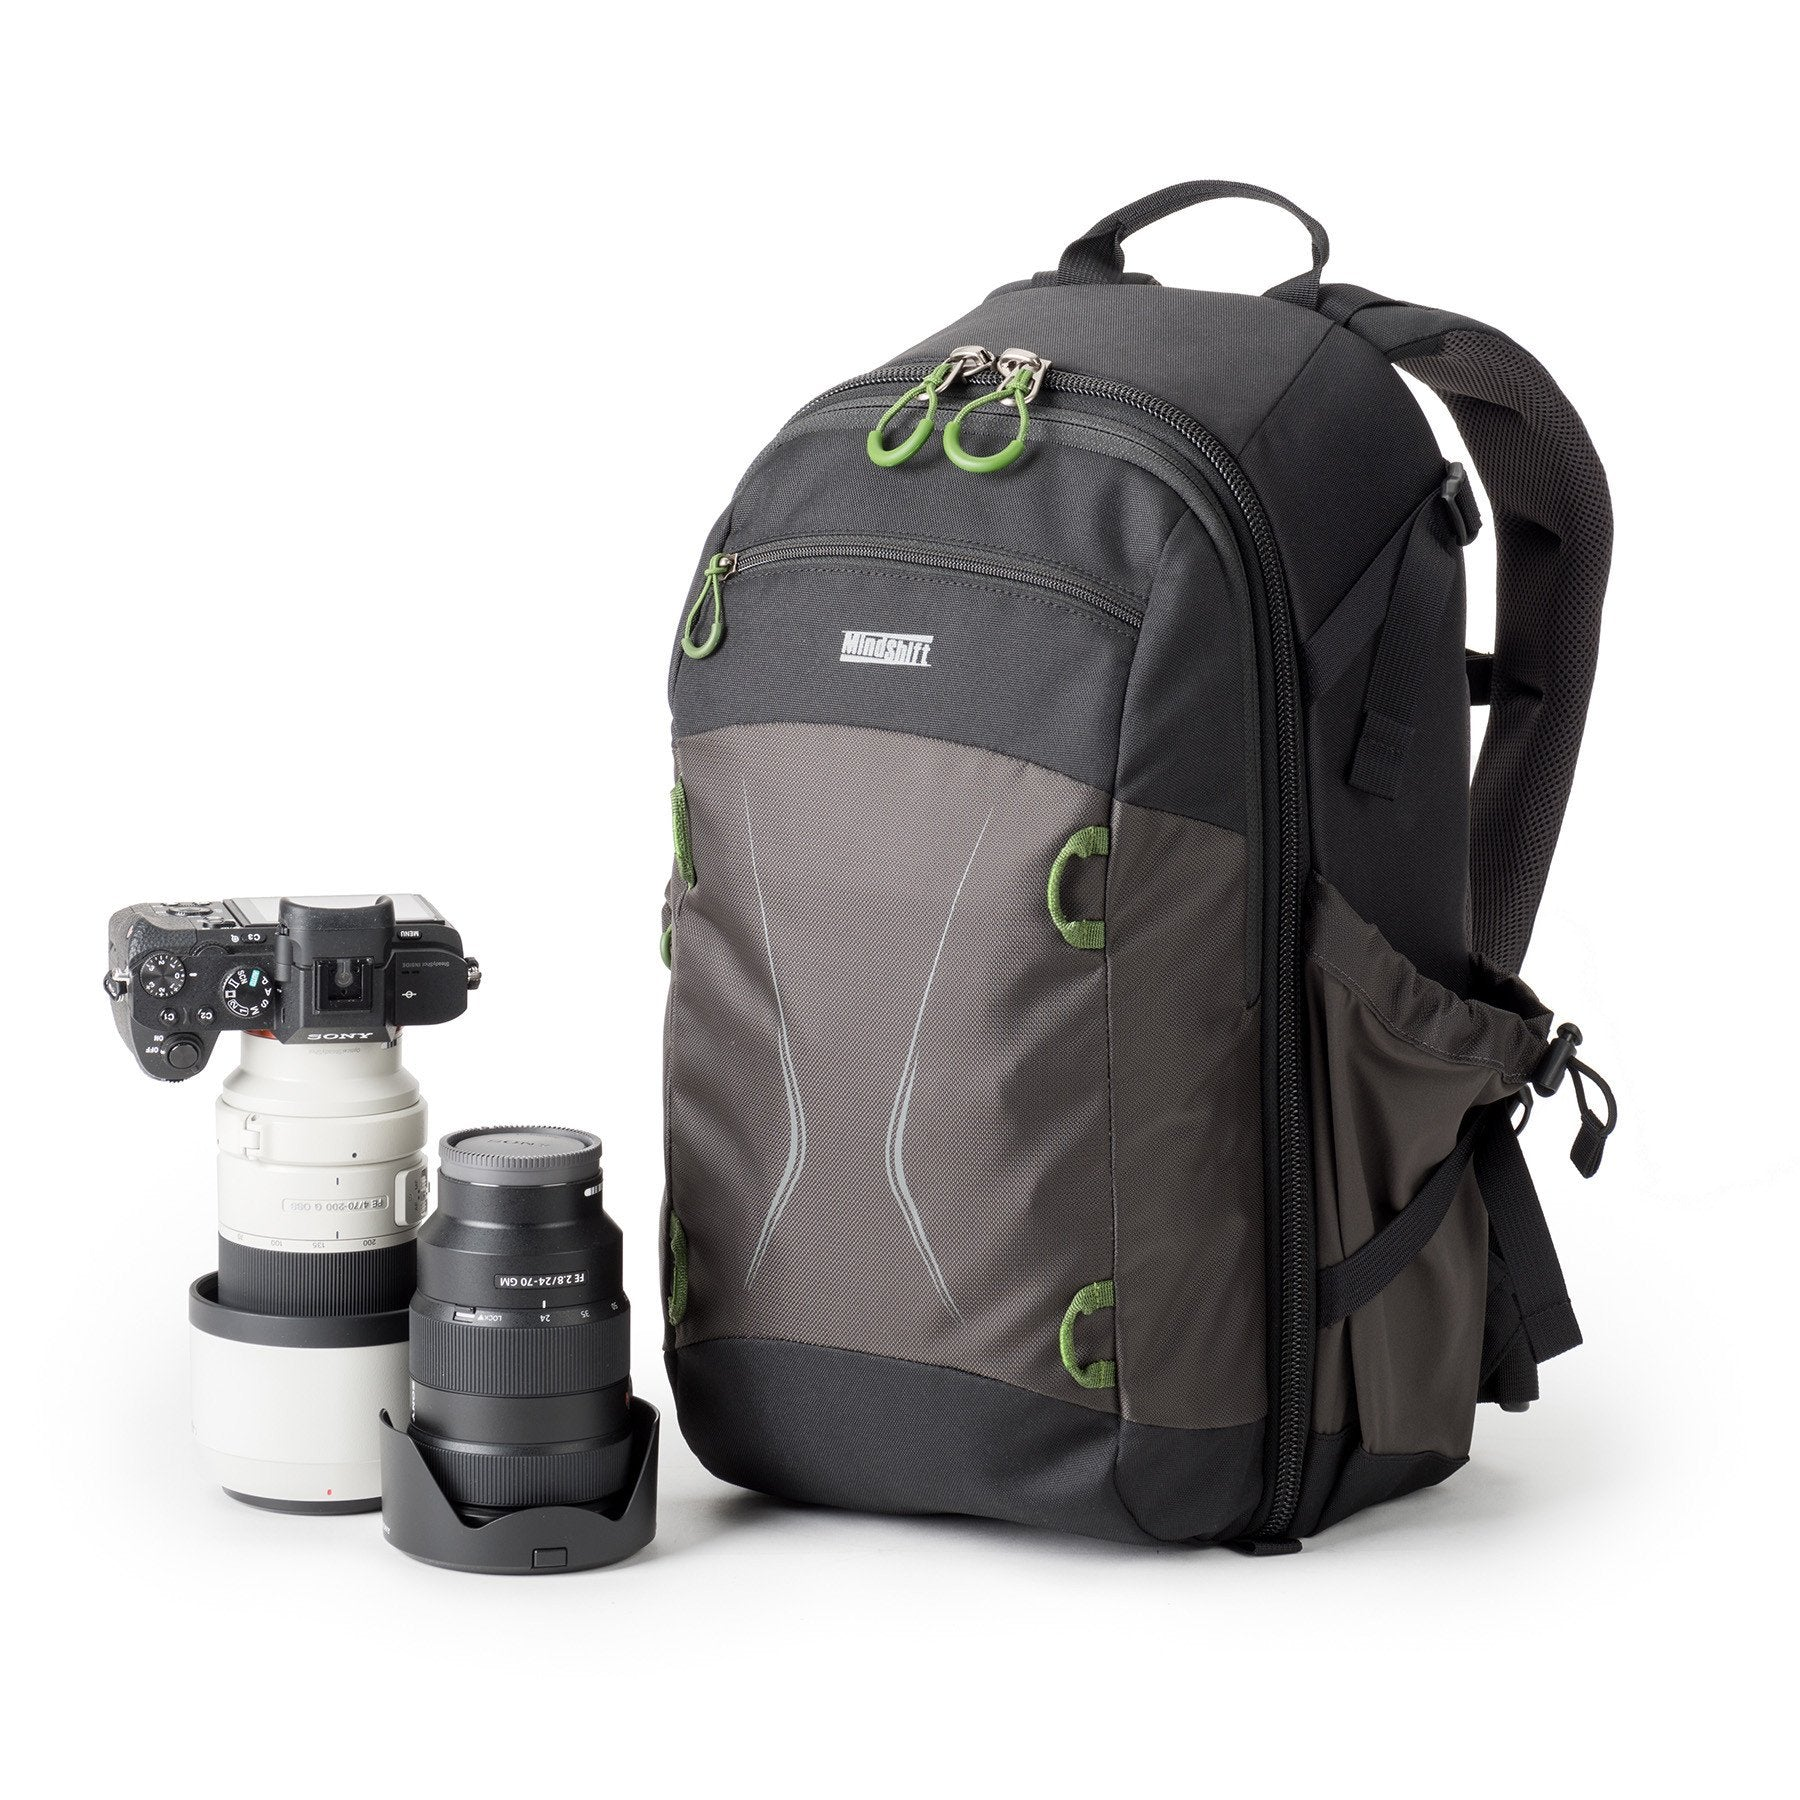 MindShift TrailScape 18L - The TrailScape offers a spacious interior, allowing for plenty of photo gear, yet maintains a slim and compact profile.